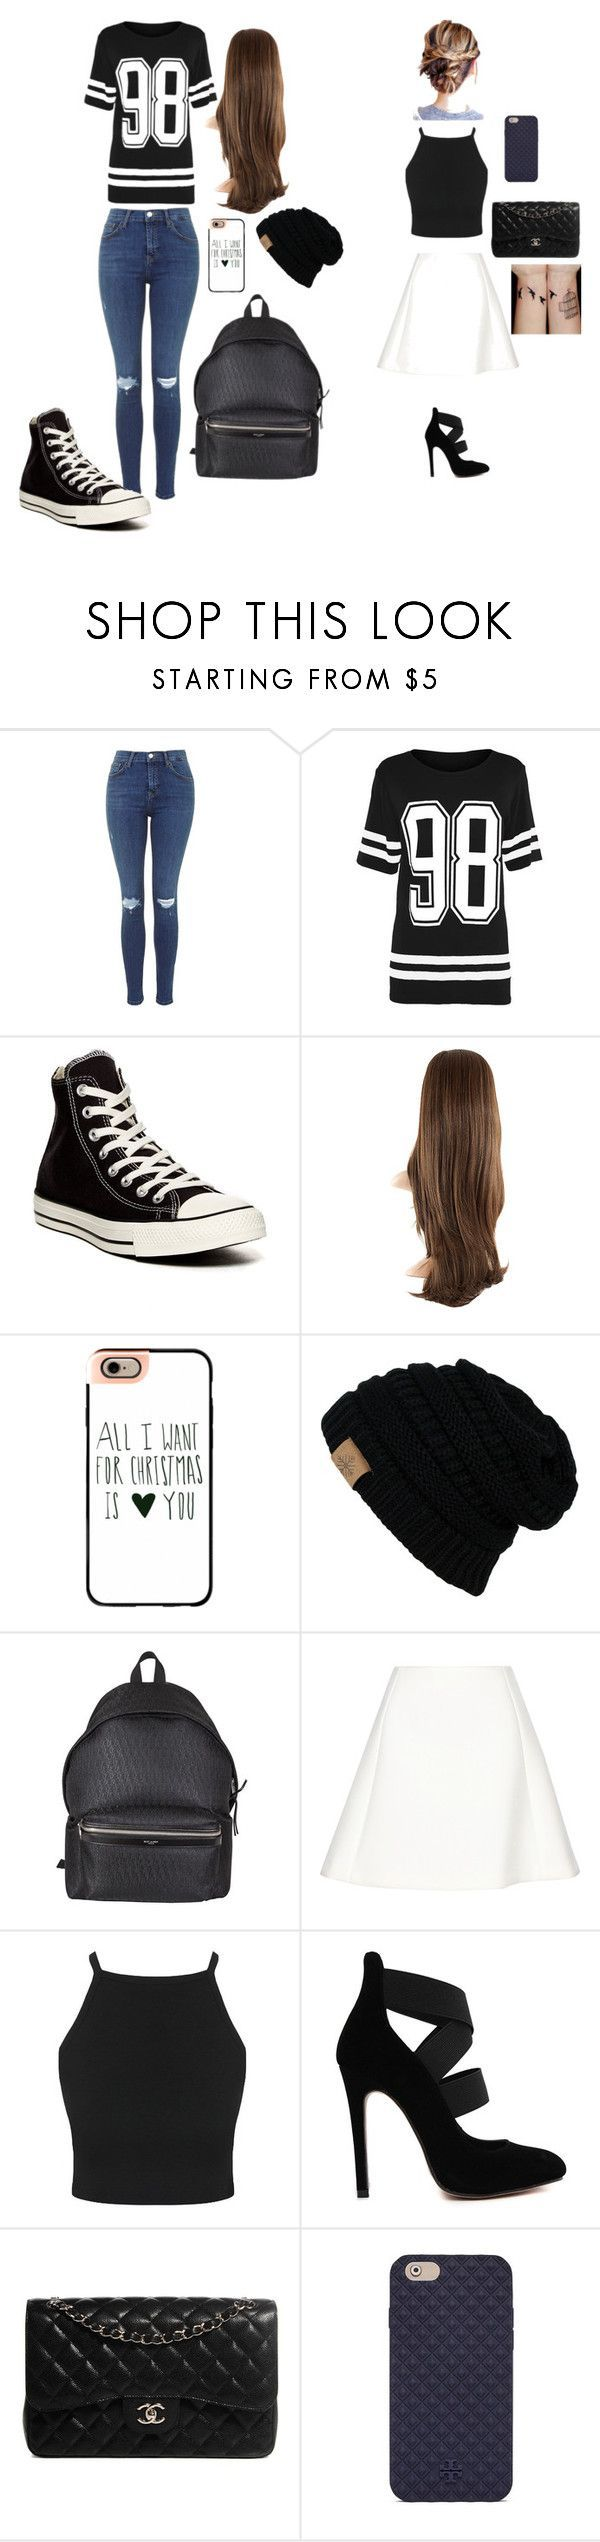 #Black #combo #Rainy Day Outfit with converse #white Black and white combo        Black and white combo by ciani-johnson on Polyvore featuring Converse, Casetify, Yves Saint Laurent, Neil Barrett, Chanel and Tory Burch #rainydayoutfitforwork